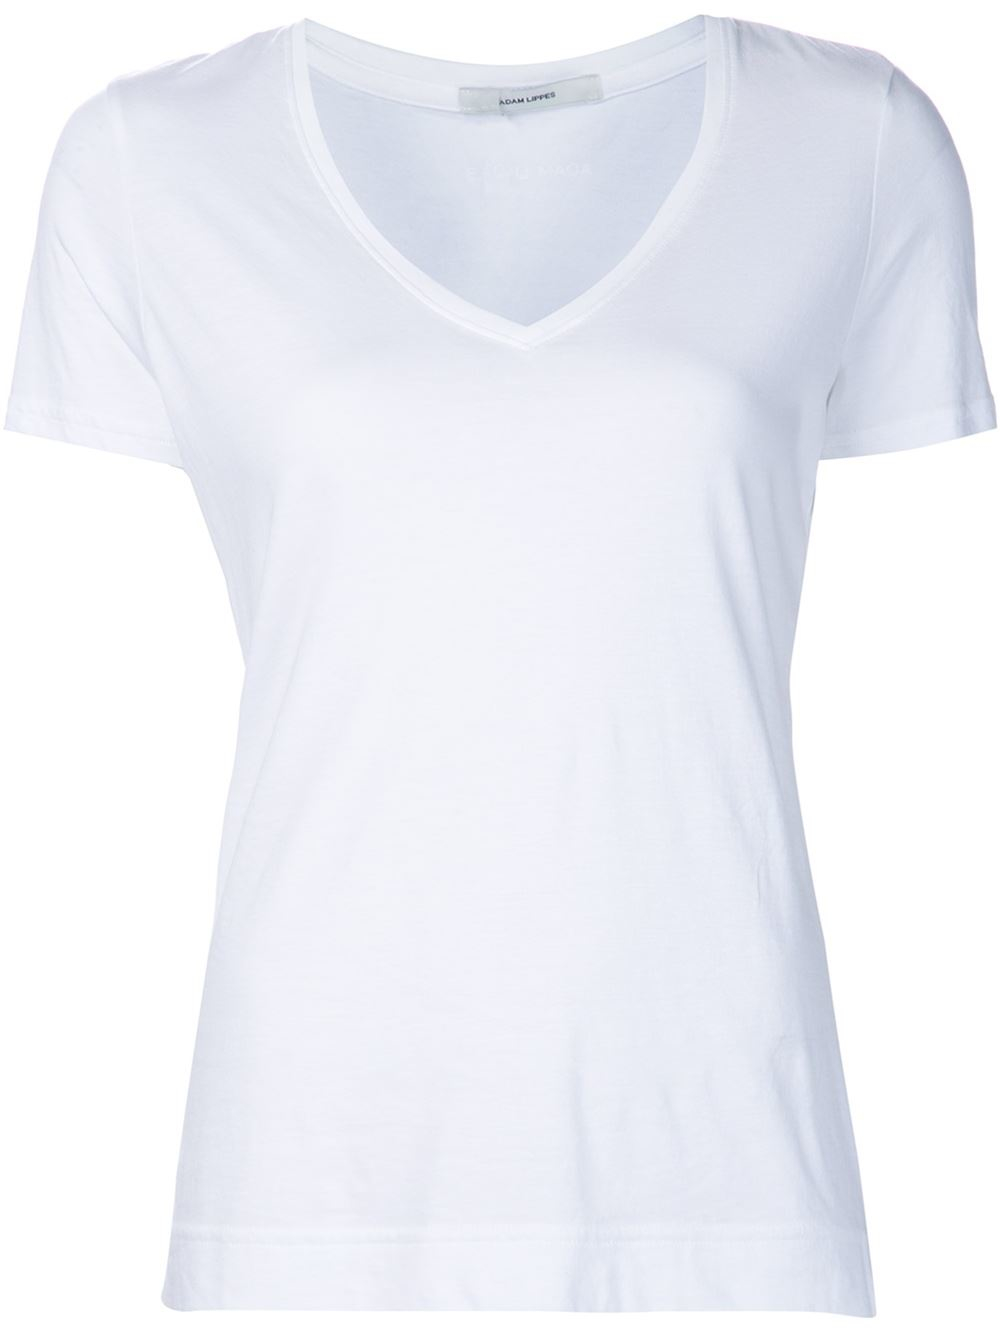 Adam lippes v neck t shirt in white lyst for Adam lippes t shirt